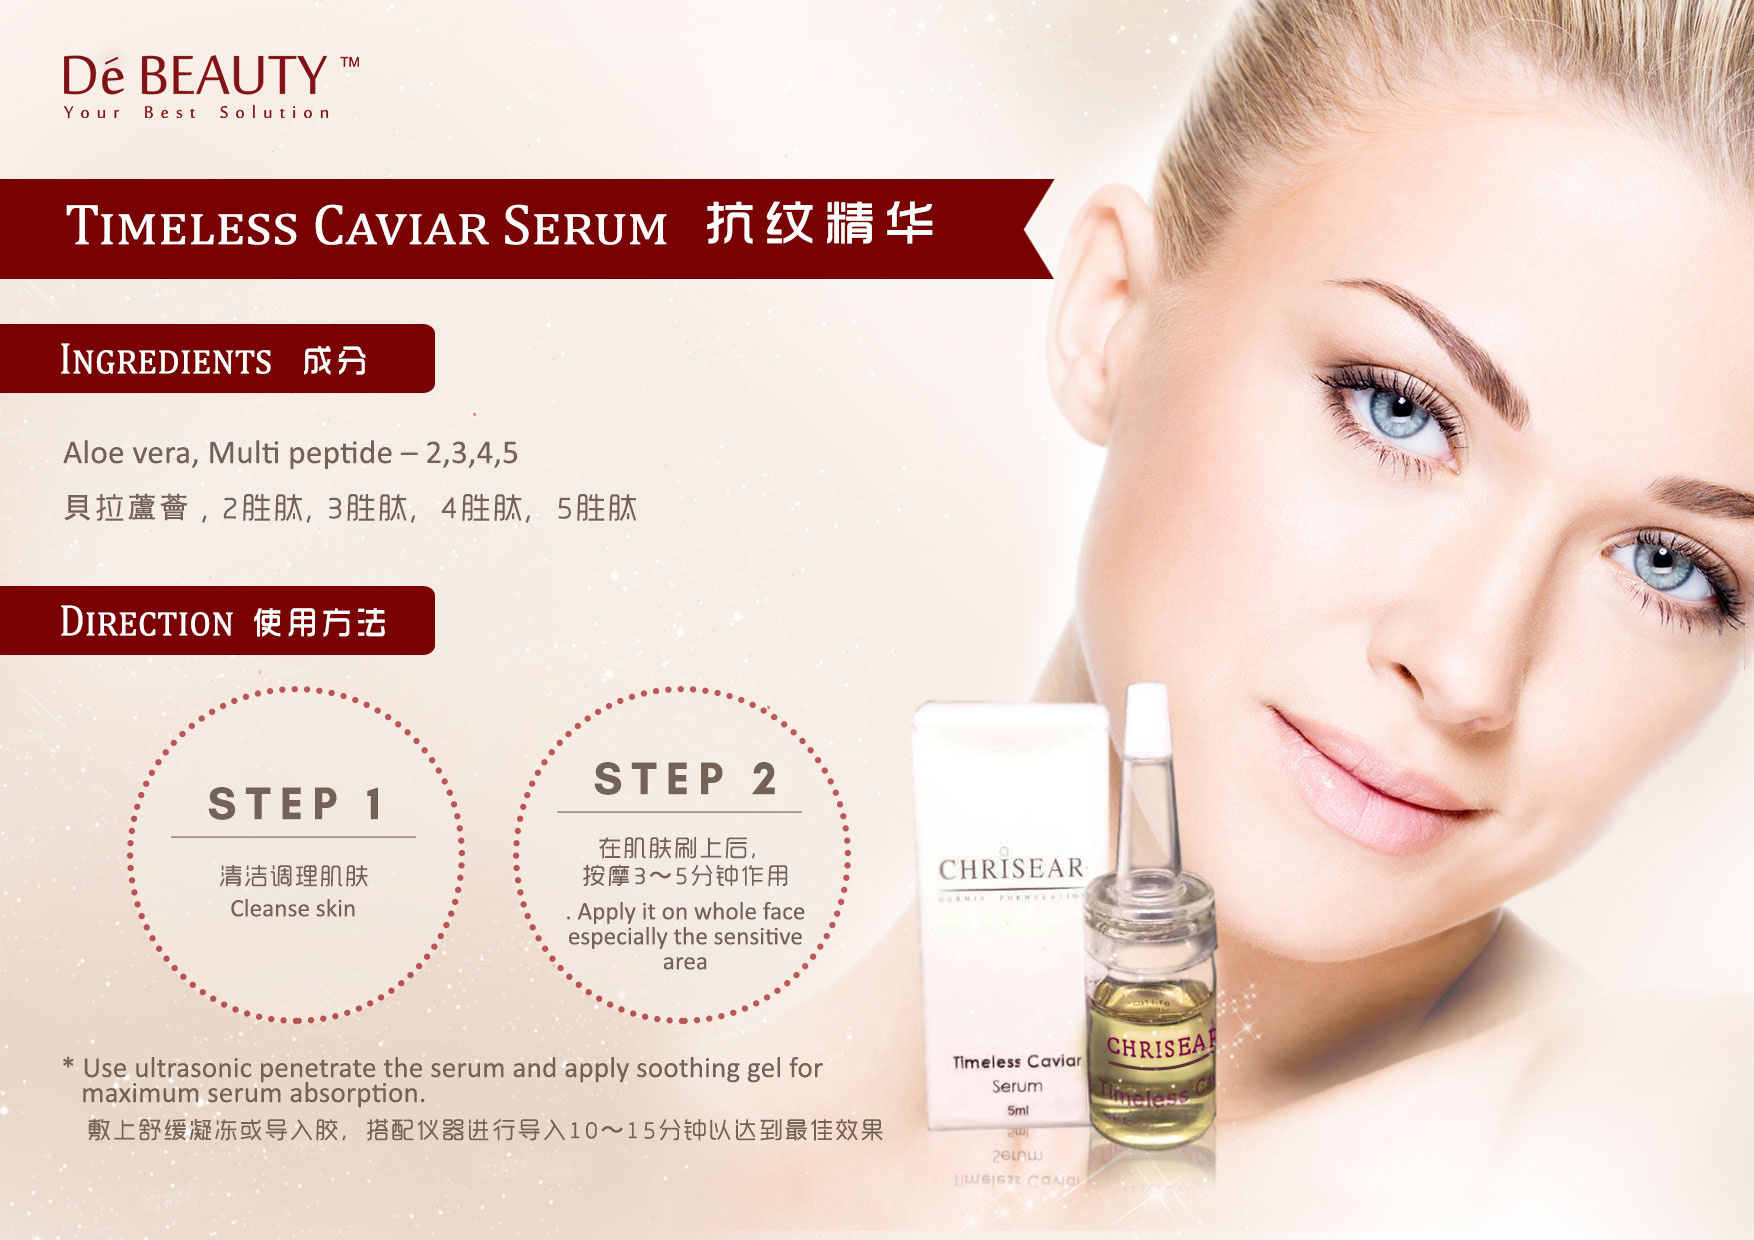 De Beauty Chrisear Timeless Caviar Serum